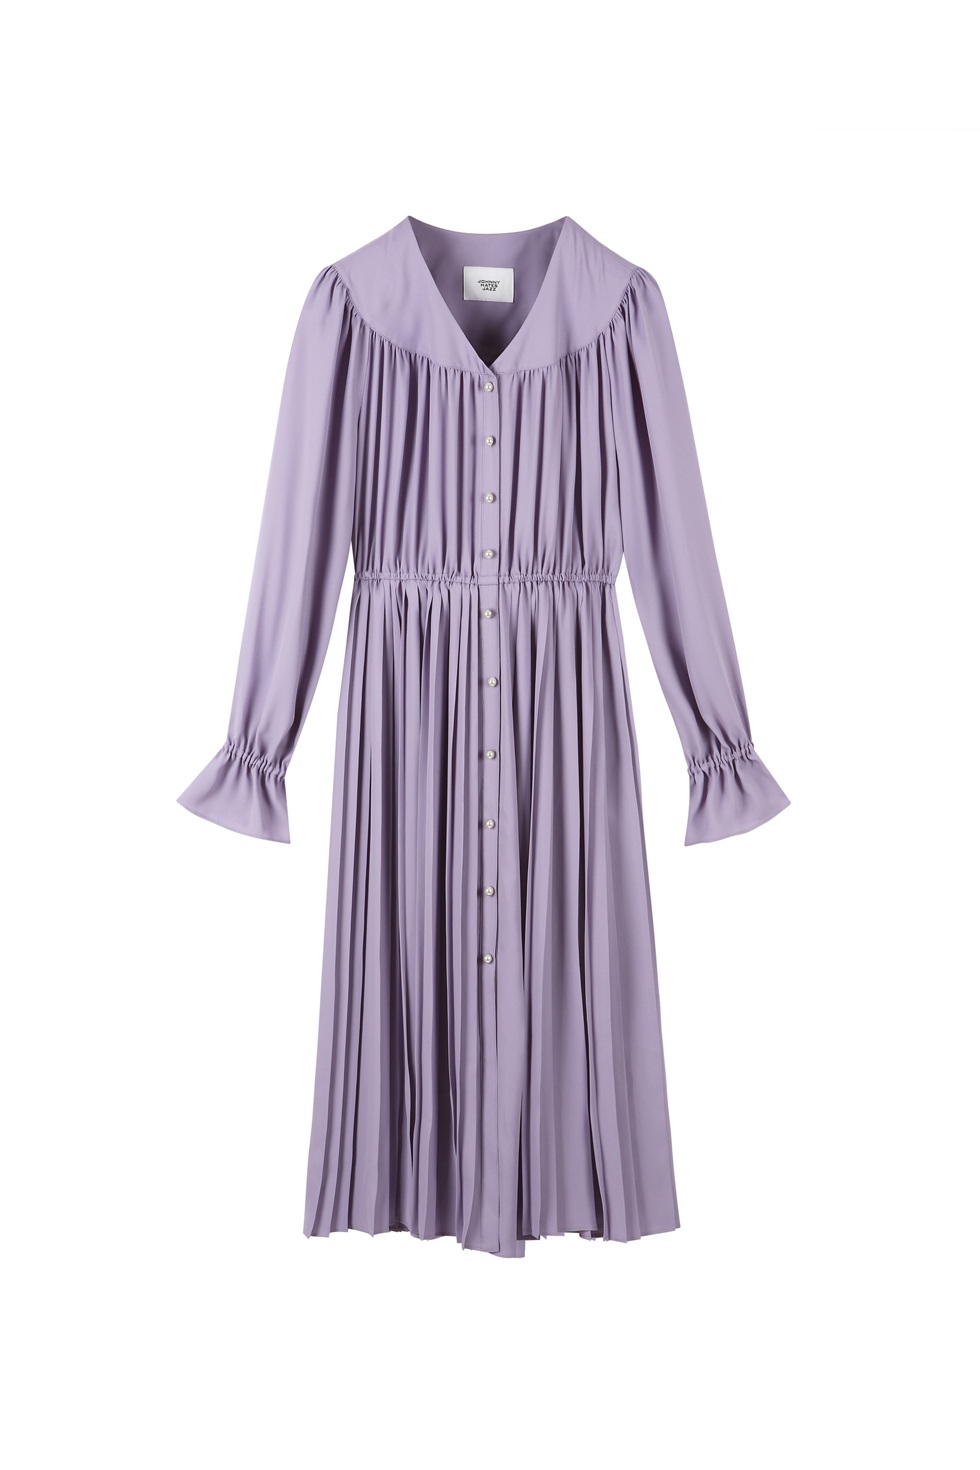 PEARL BUTTON PLEATS DRESS - PURPLE